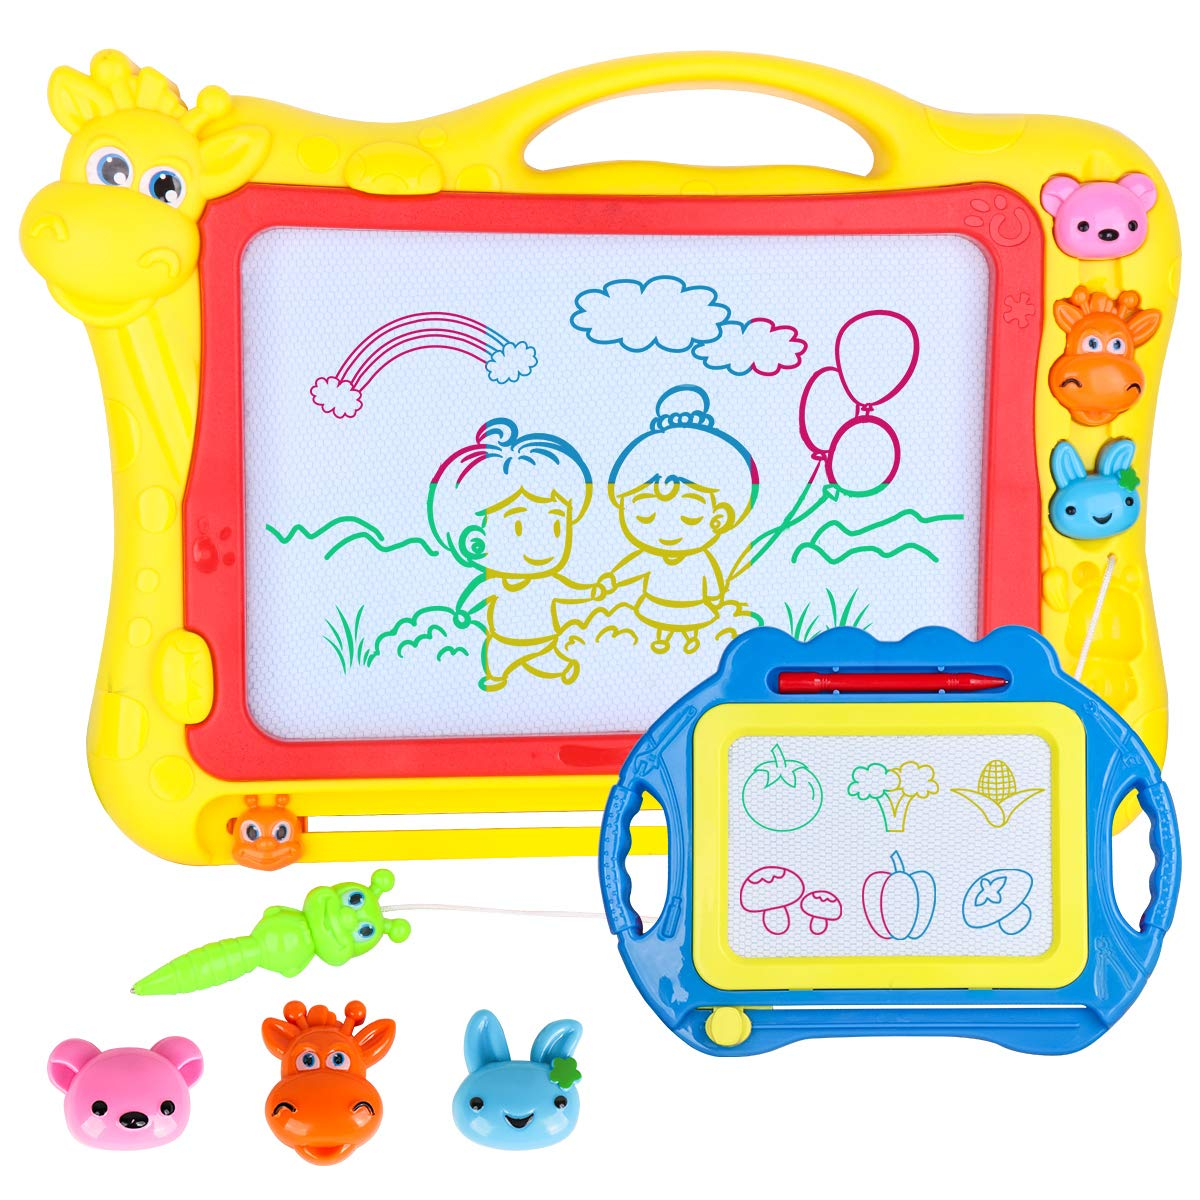 Magnetic Drawing Board for Kids - Large 17Inch Toddler Colorful Magna Doodle Pad with a Travel Size Etch Sketch Writing Board Pro with Magnet Pen, Baby Education Learning Toys & Gifts for Boys Girls by Meland